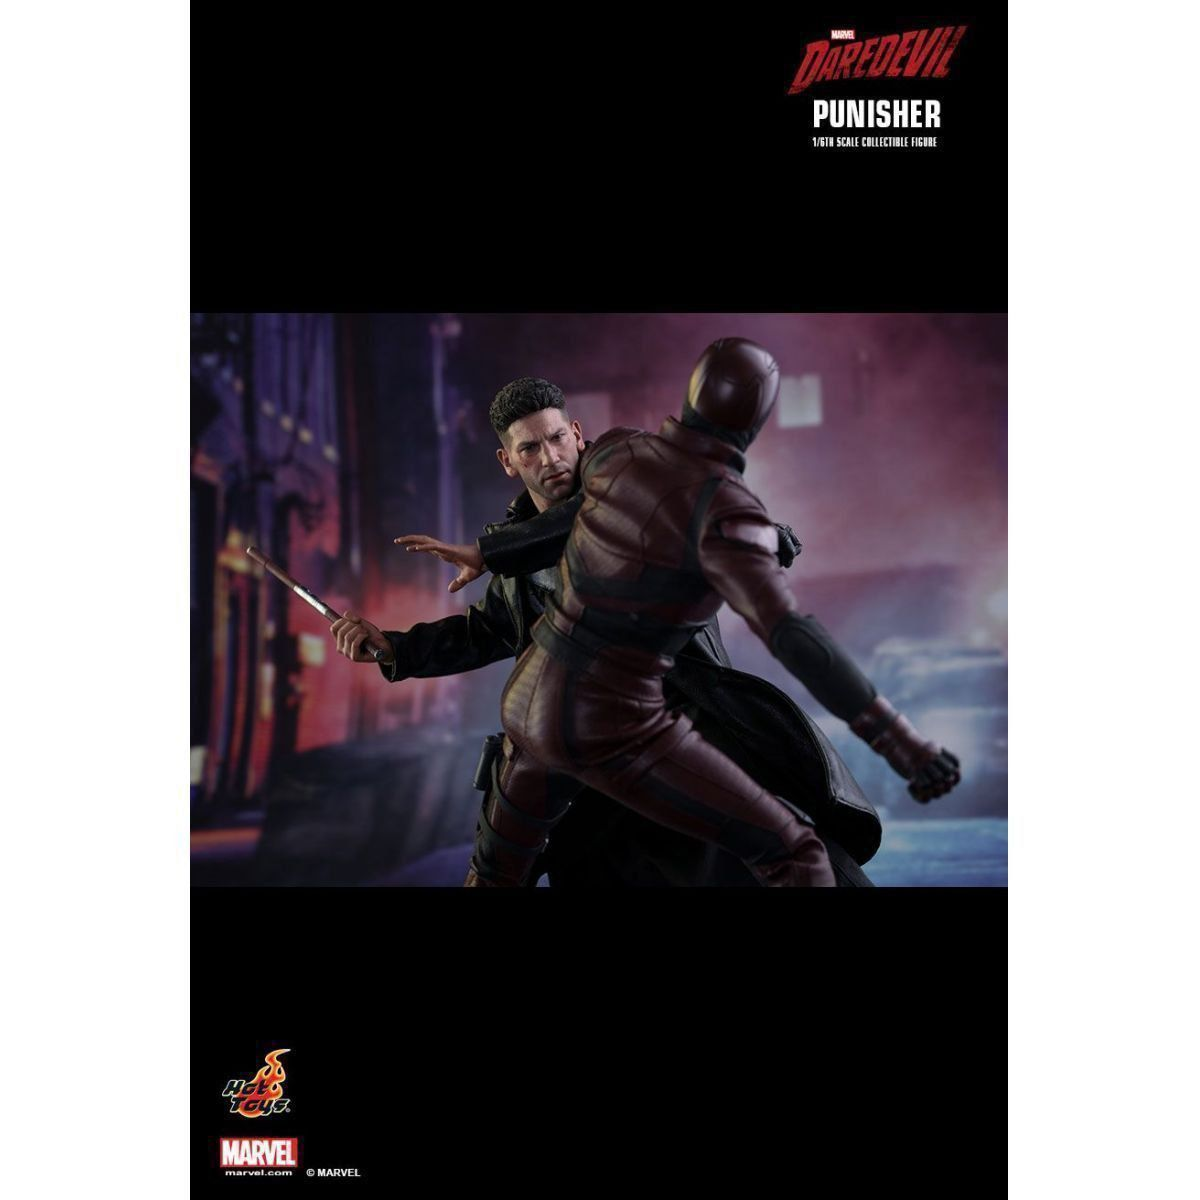 Action Figure The Punisher O Justiceiro Série Demolidor Daredevil TMS004 Escala 1/6  Marvel - Hot Toys